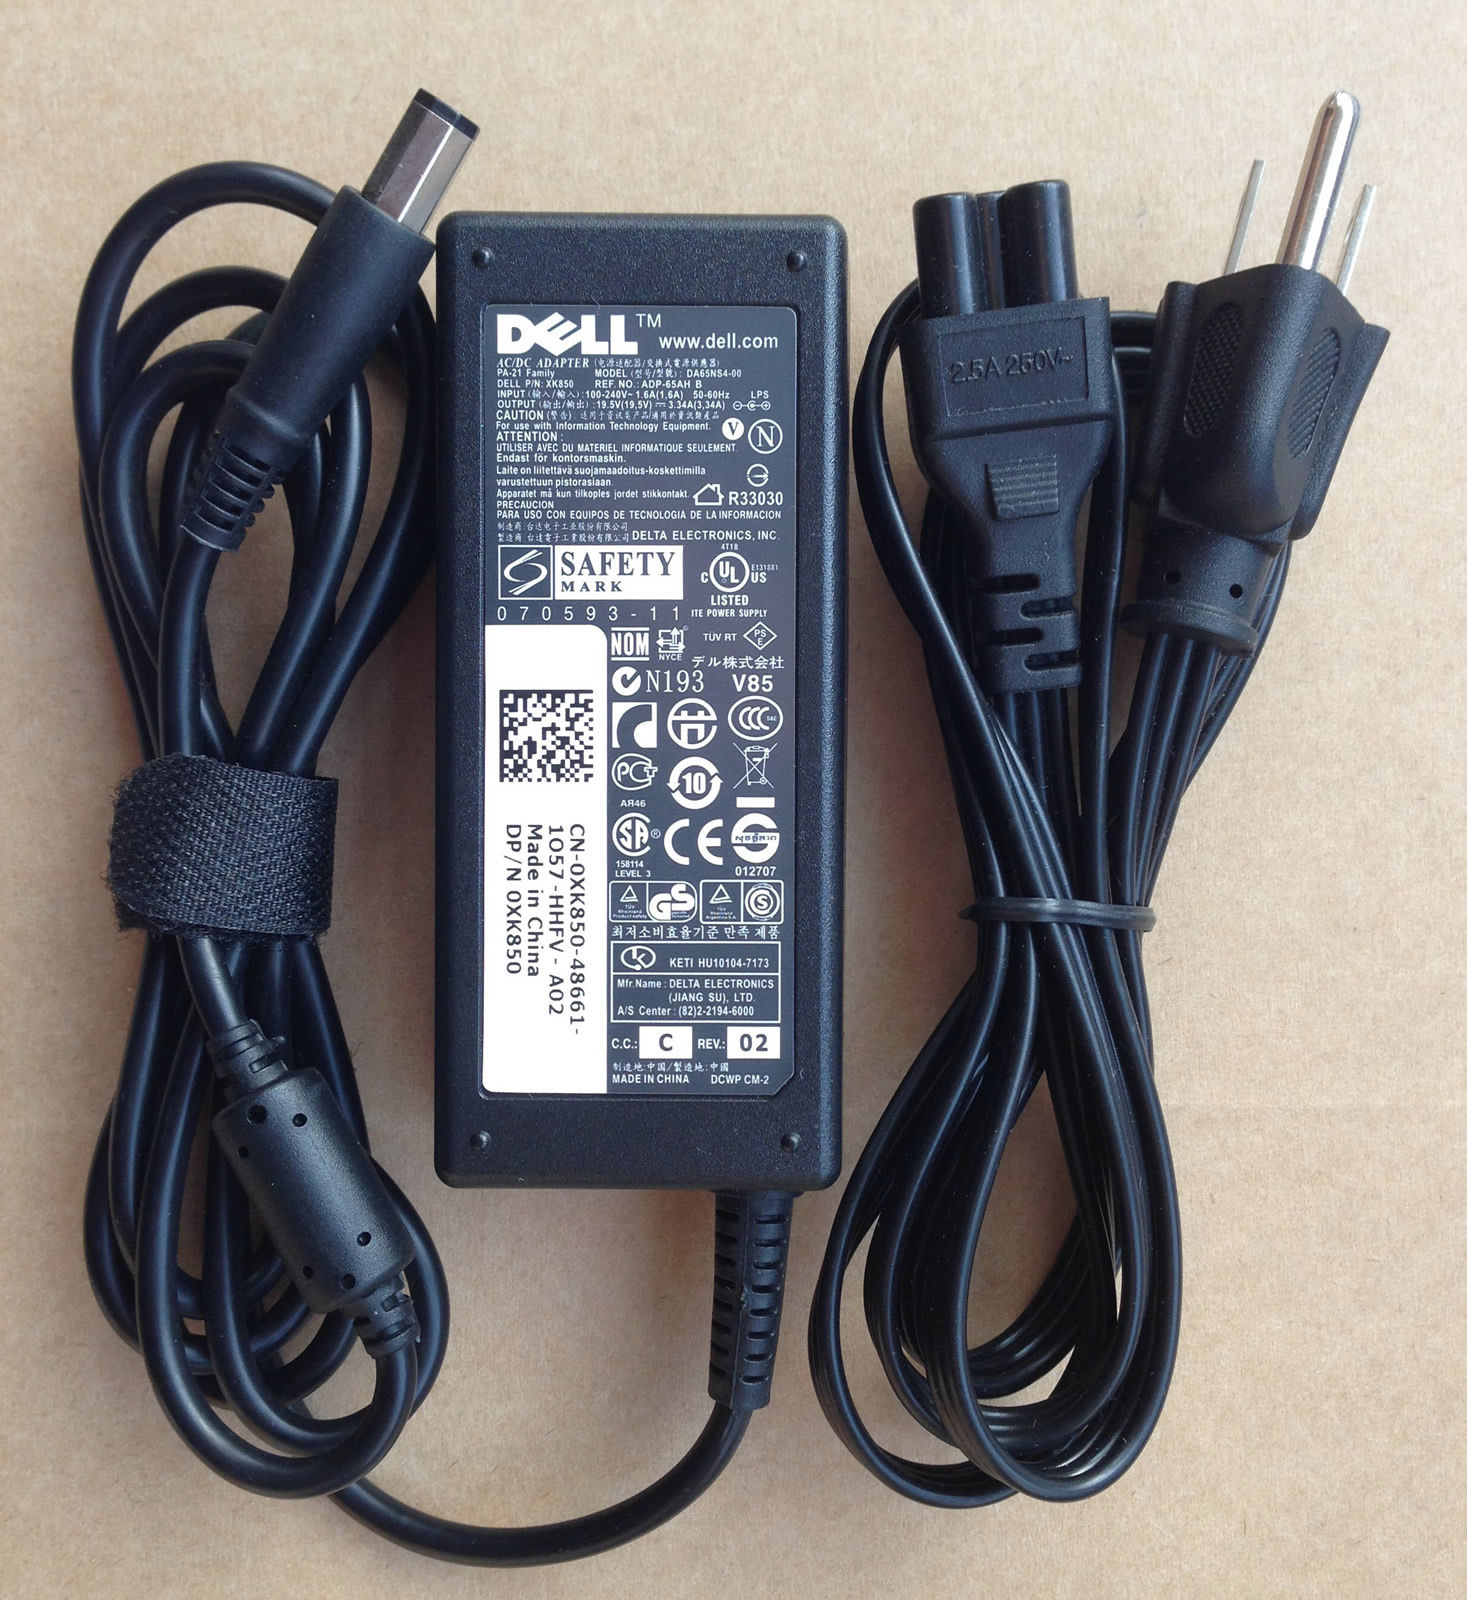 65W Dell Inspiron 1318 PA-1650-02DW Chargeurs